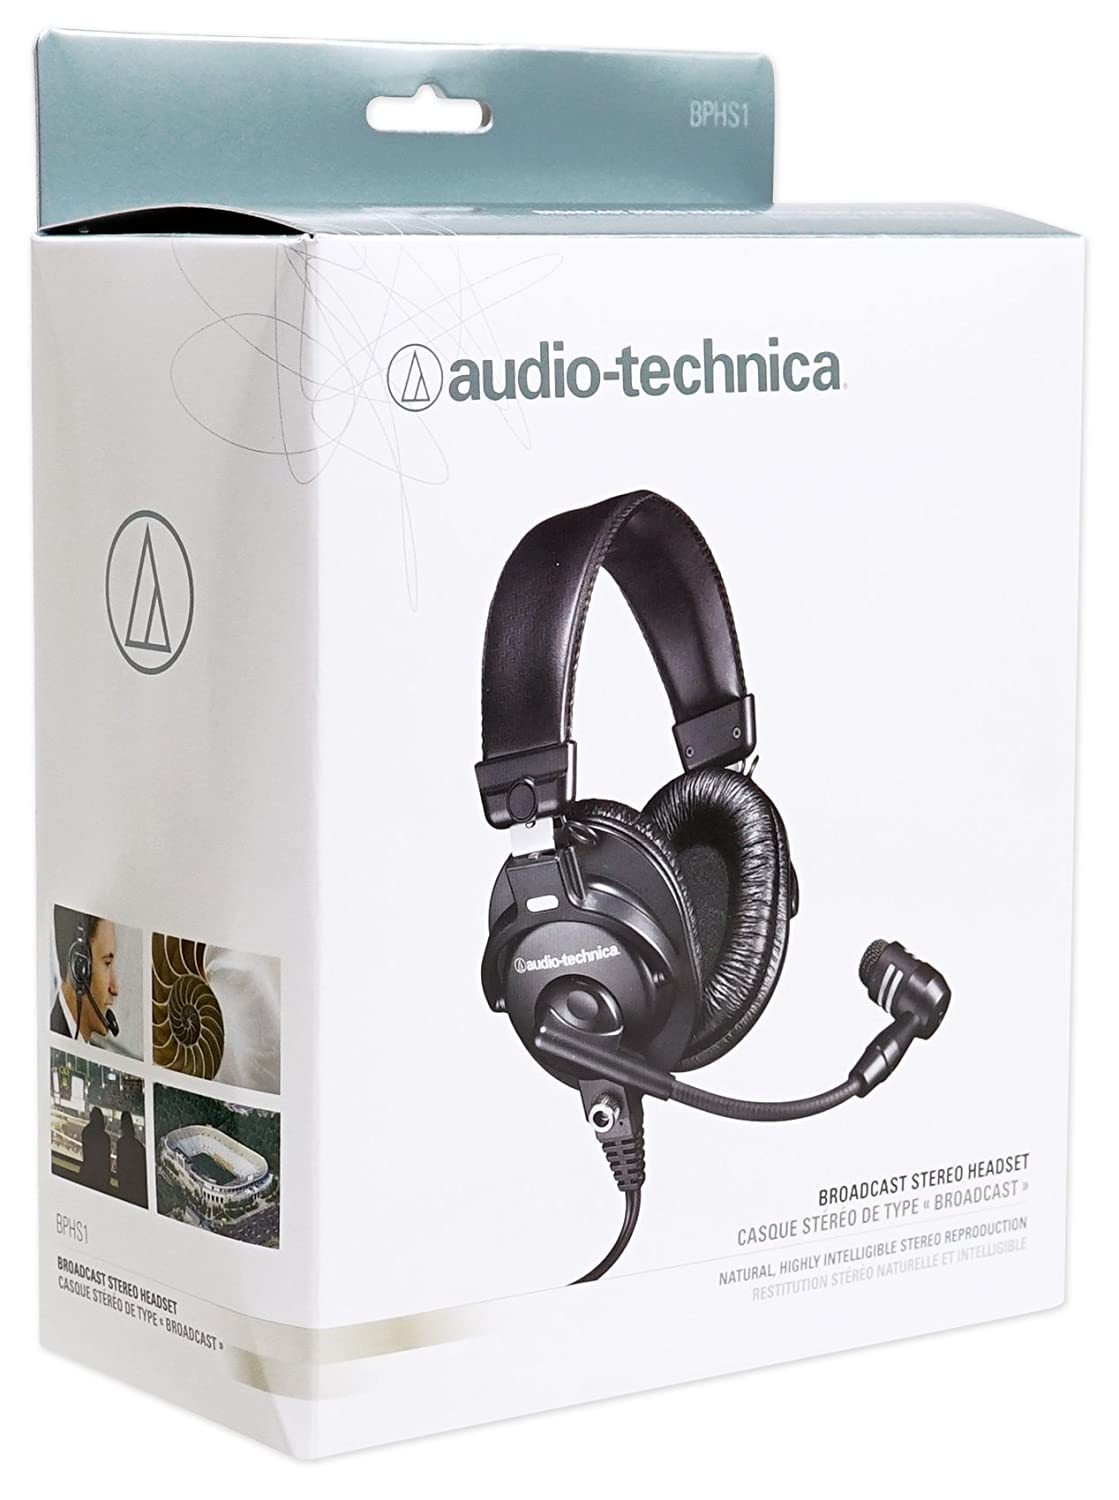 a36b27535c6 Amazon.com: Audio Technica BPHS1 Over-Ear Broadcast Headset w/Boom+Studio  Mic+Headphones: Home Audio & Theater